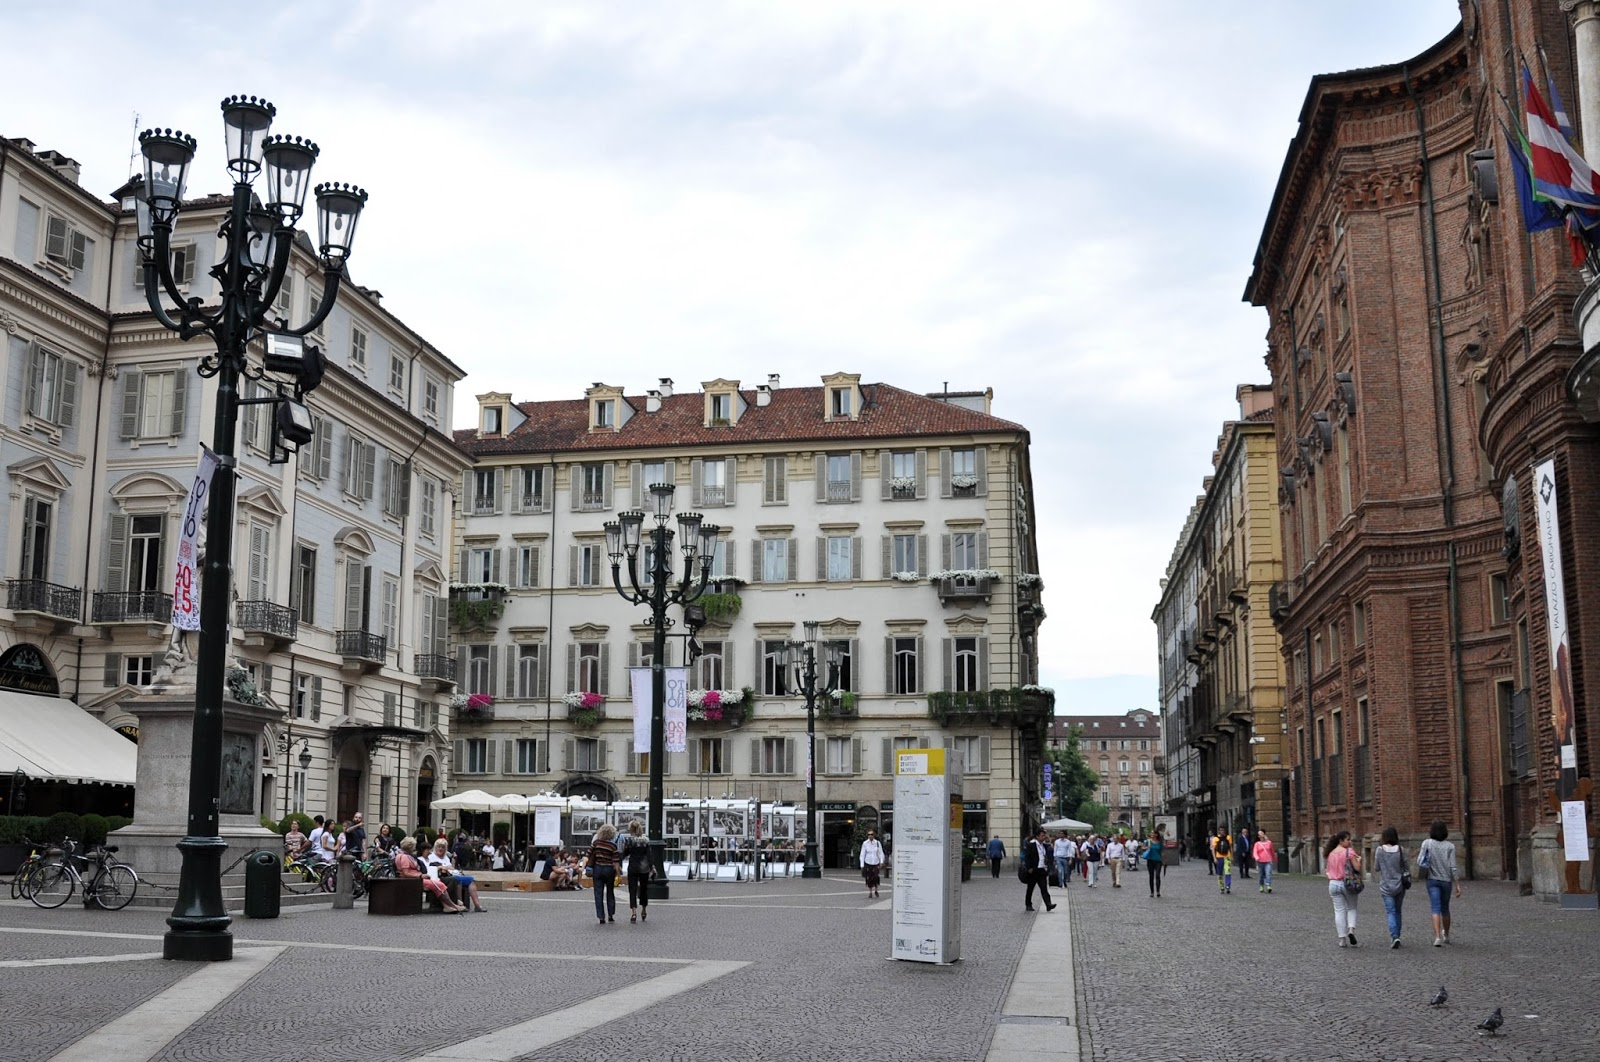 Walking around Turin, Italy